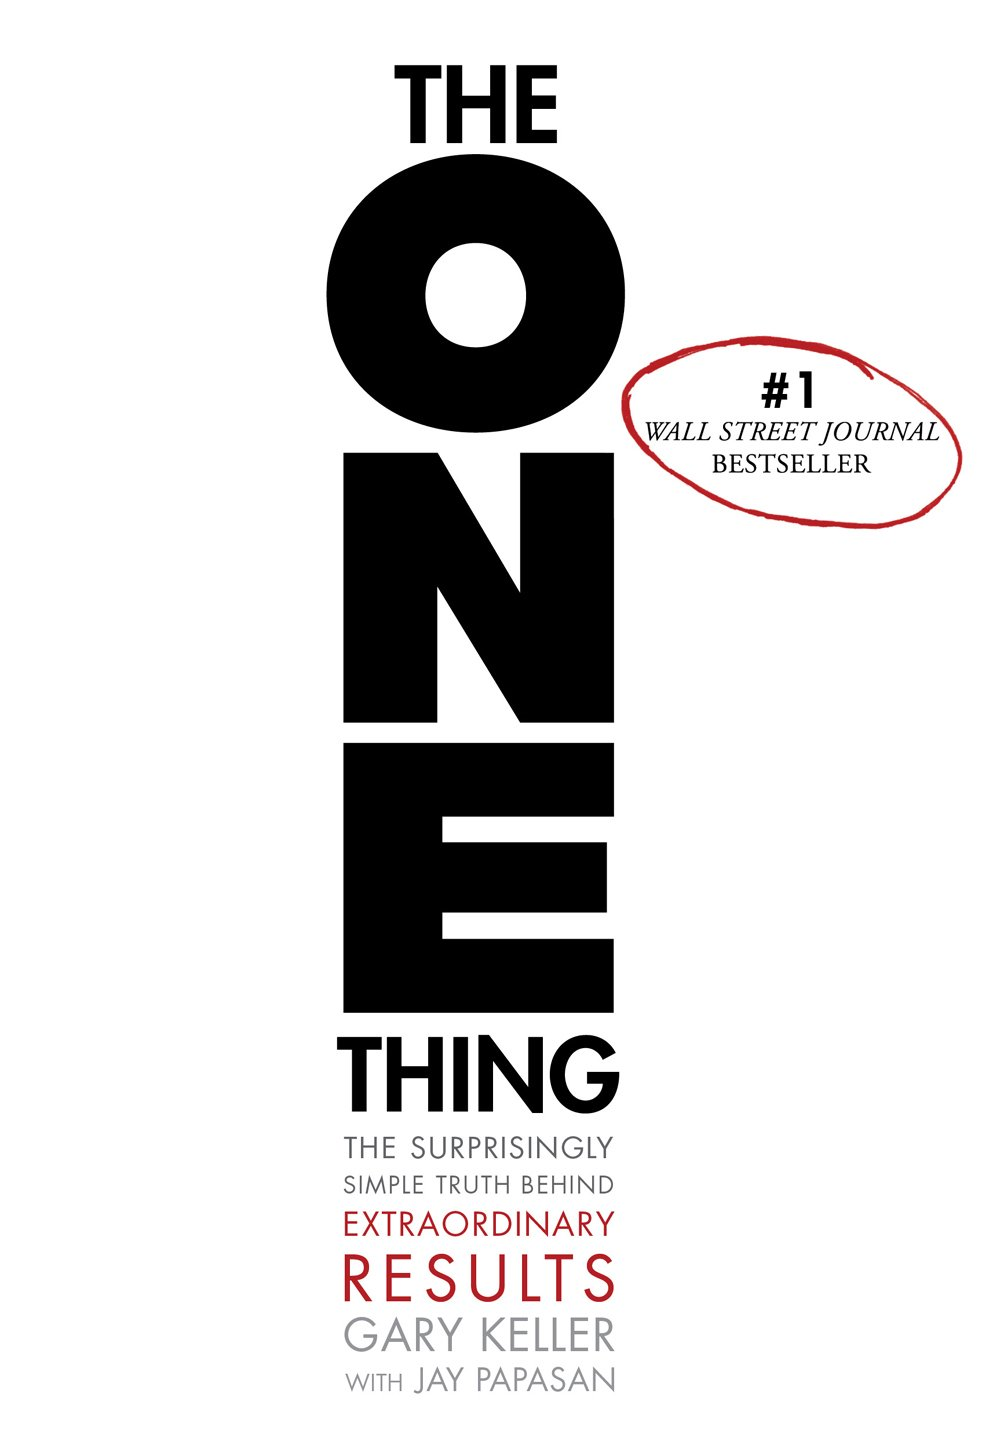 The ONE Thing - The Surprisingly Simple Truth Behind Extraordinary Results